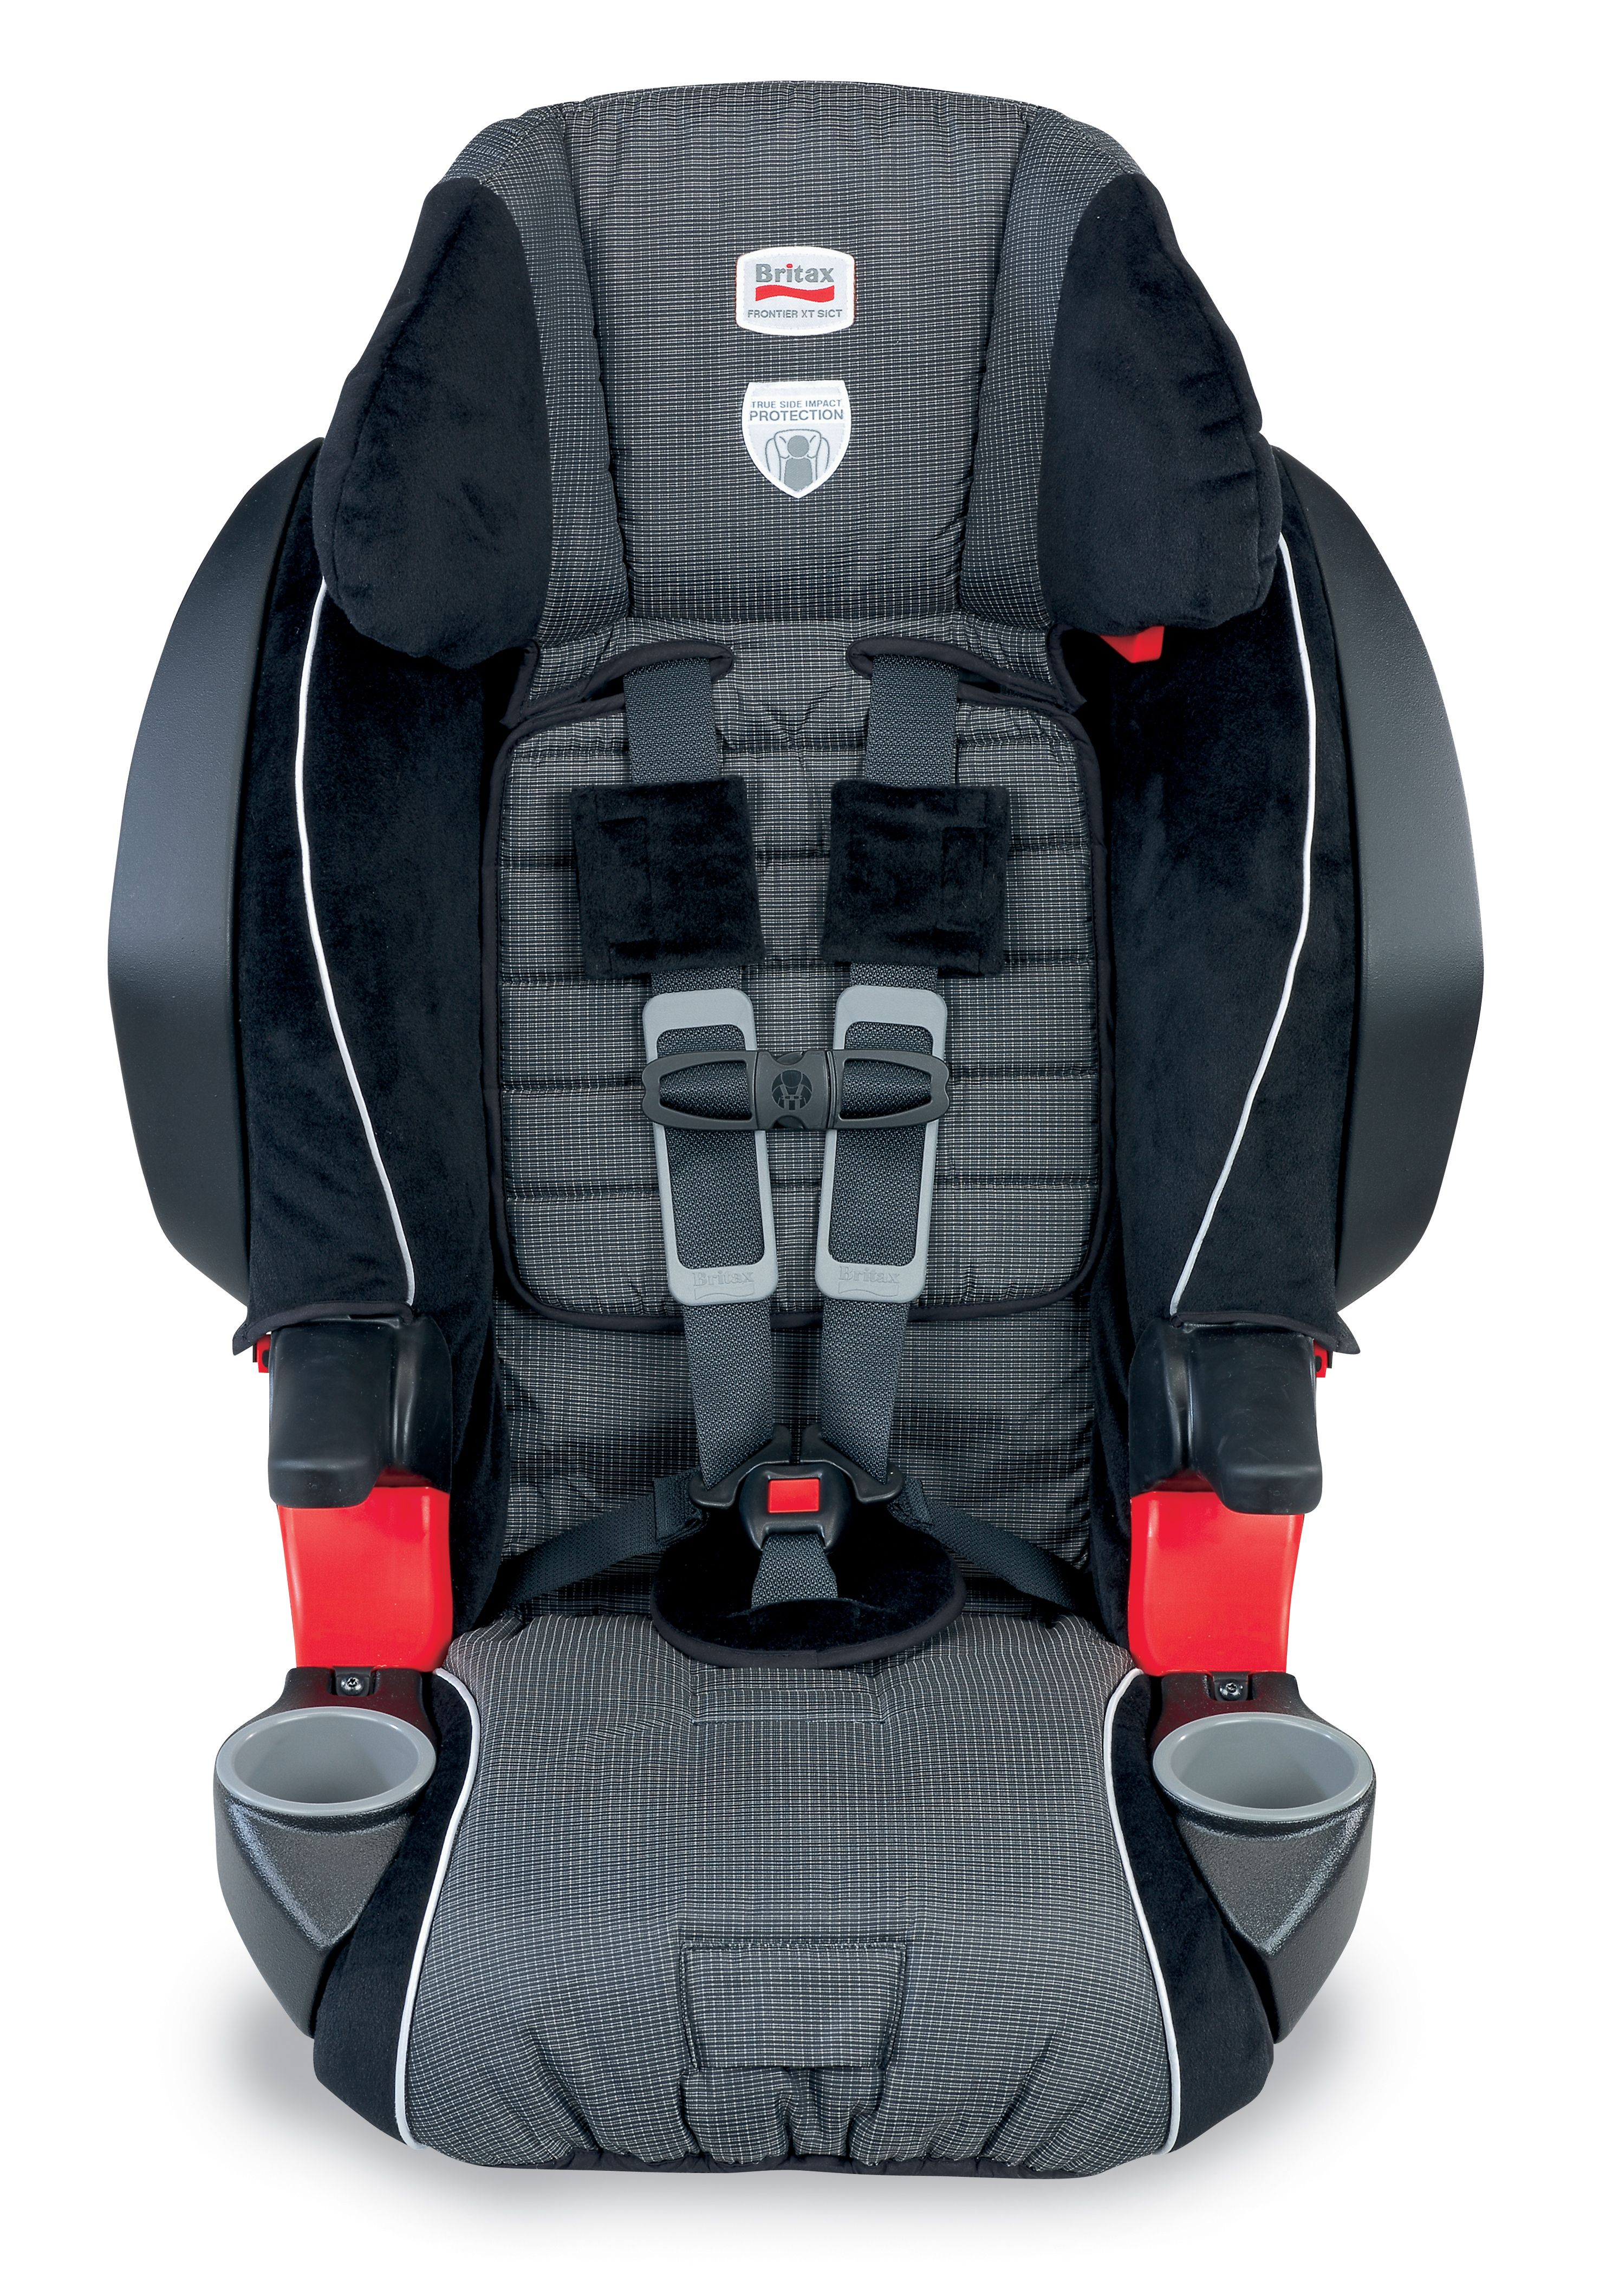 britax frontier xt user manual a good owner manual example u2022 rh usermanualhub today Britax Roundabout 55 Convertible Car Seat Britax Roundabout 55 Convertible Car Seat